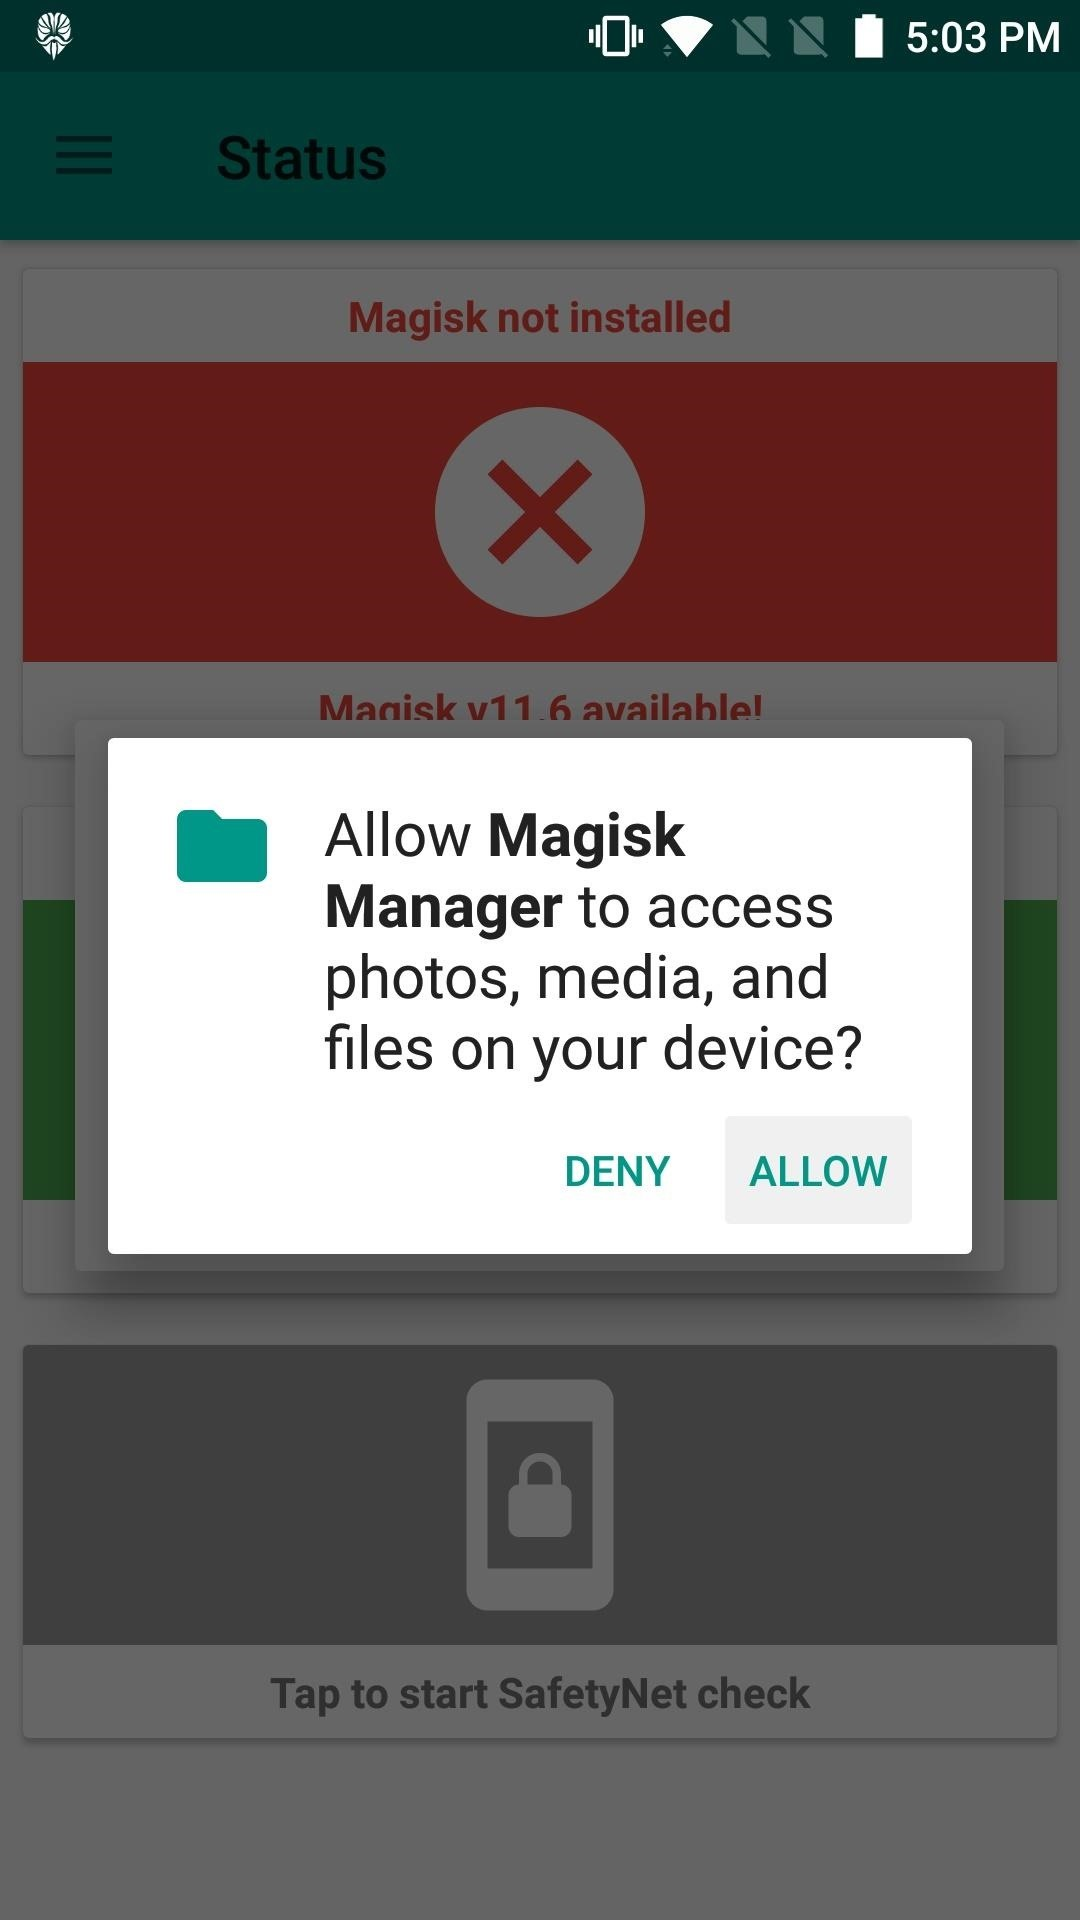 Magisk 101: How to Install Magisk on Your Rooted Android